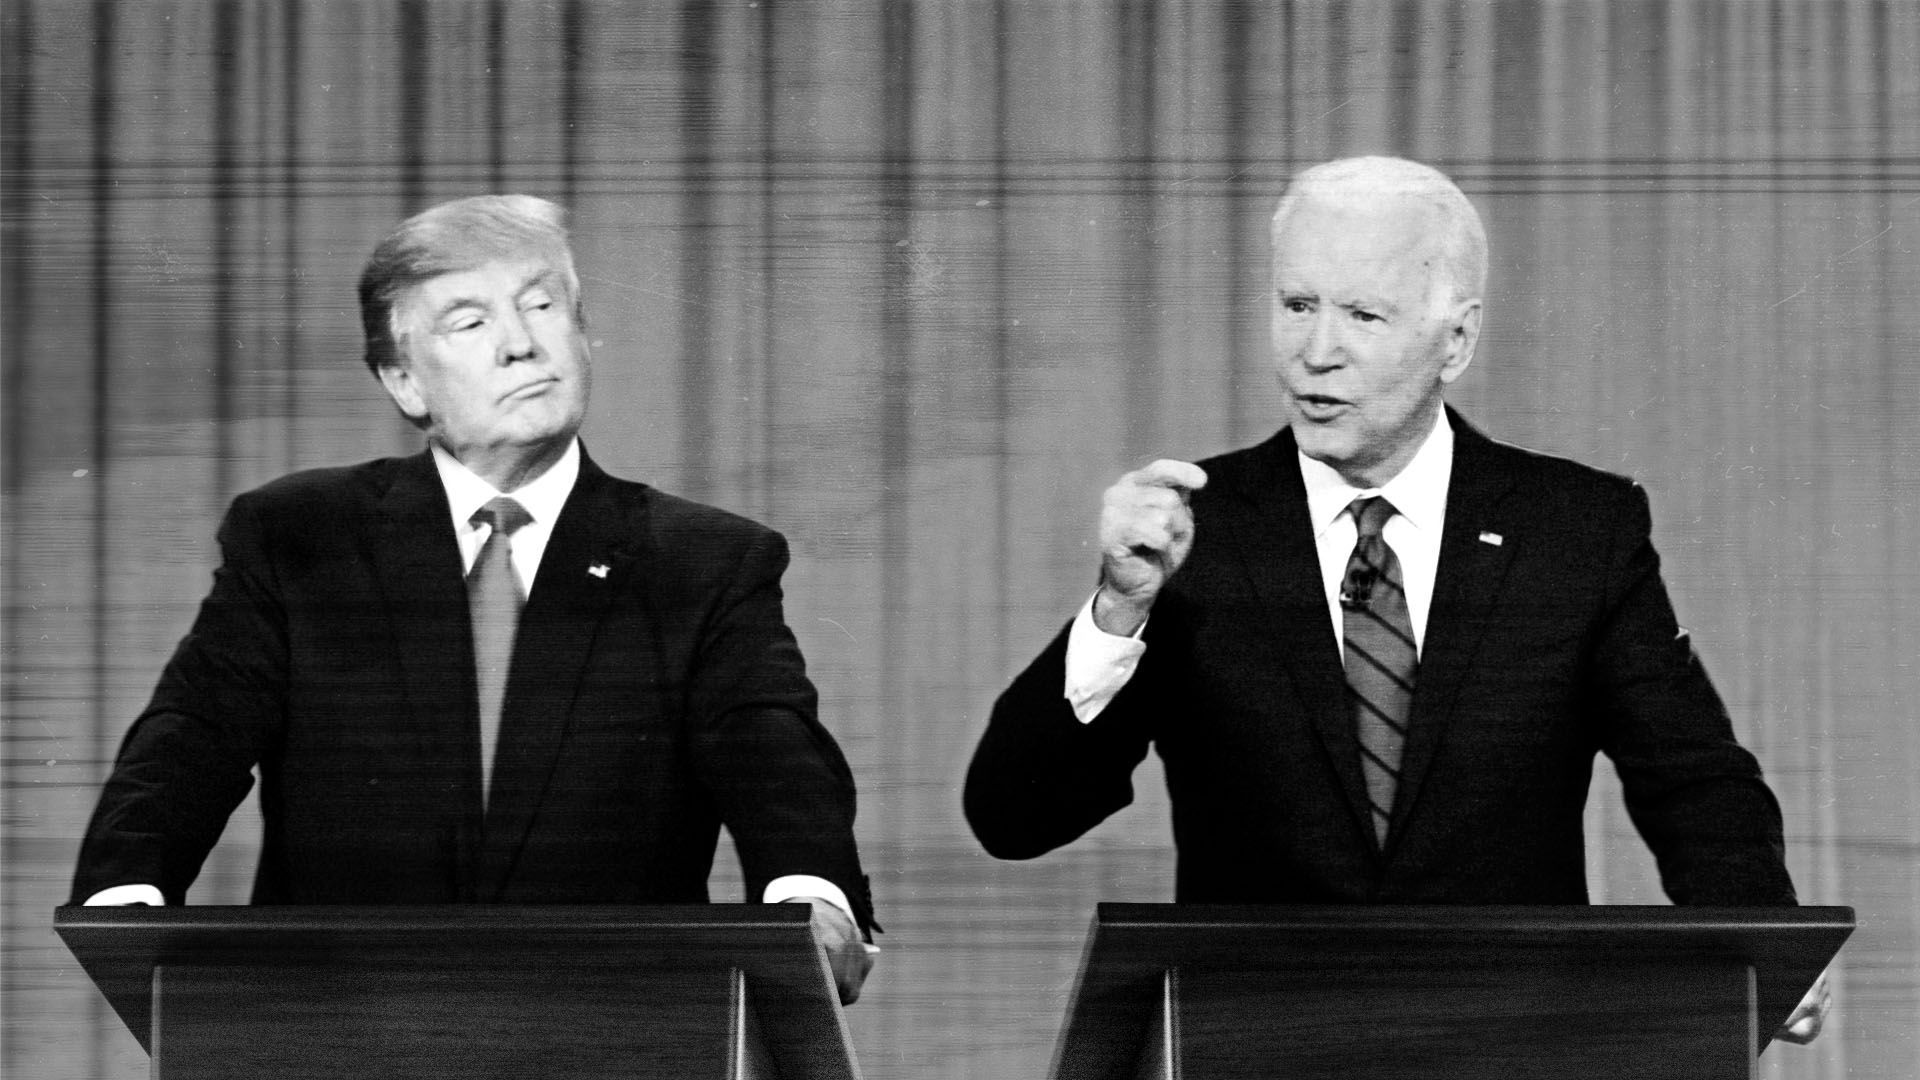 Trump and Biden ready to refight 1968 - Axios